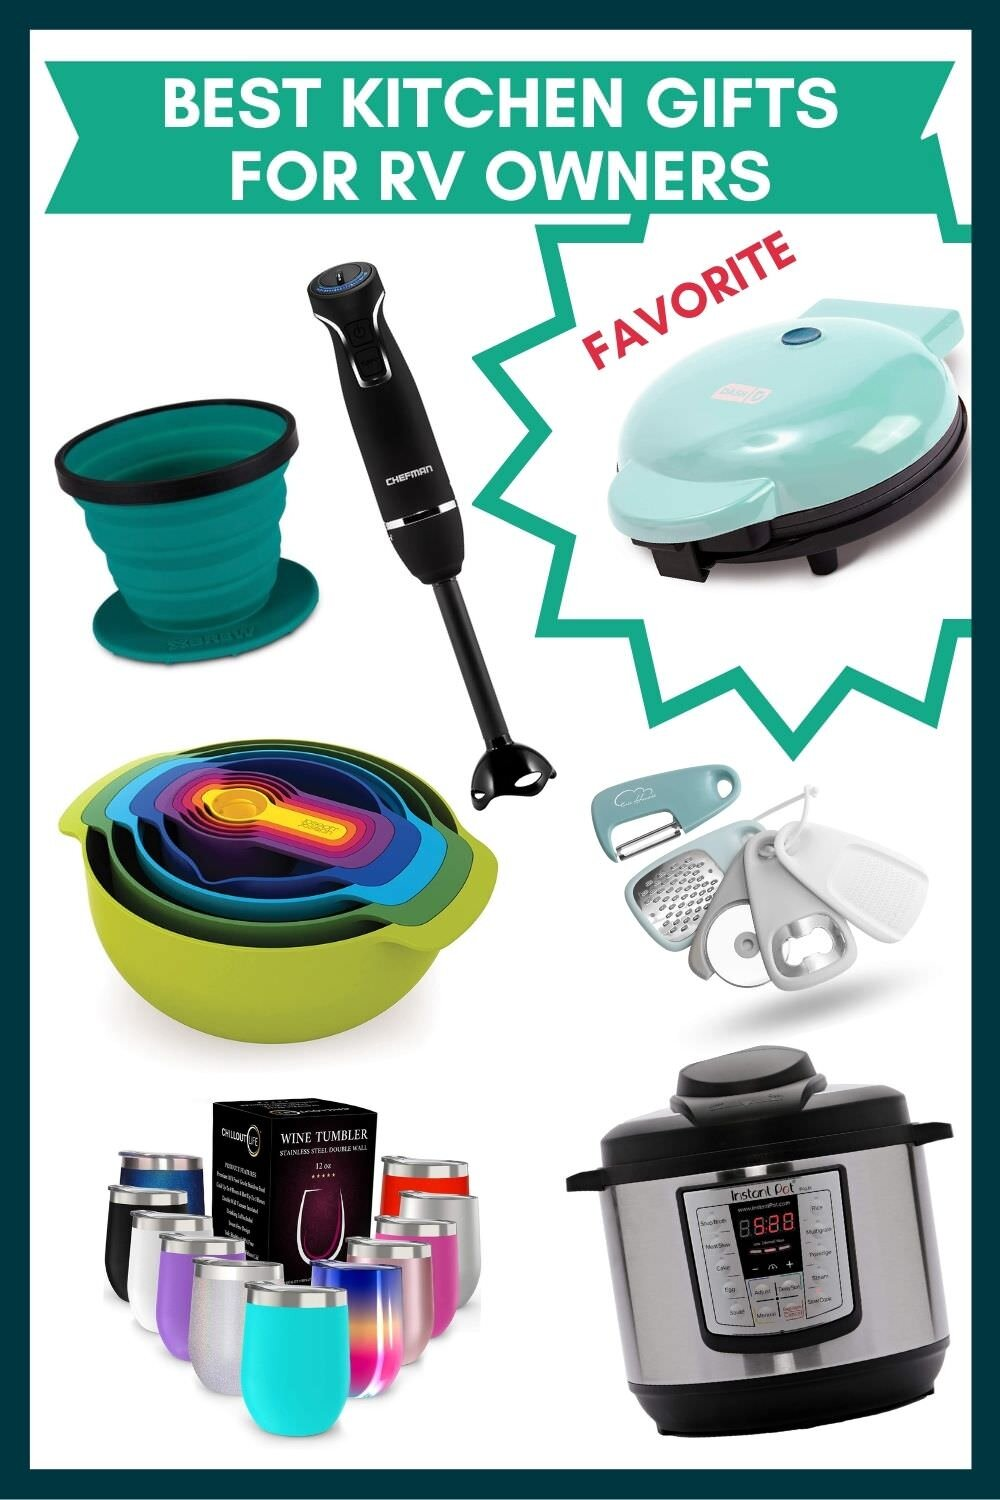 Best Kitchen gift ideas for RV Owners.